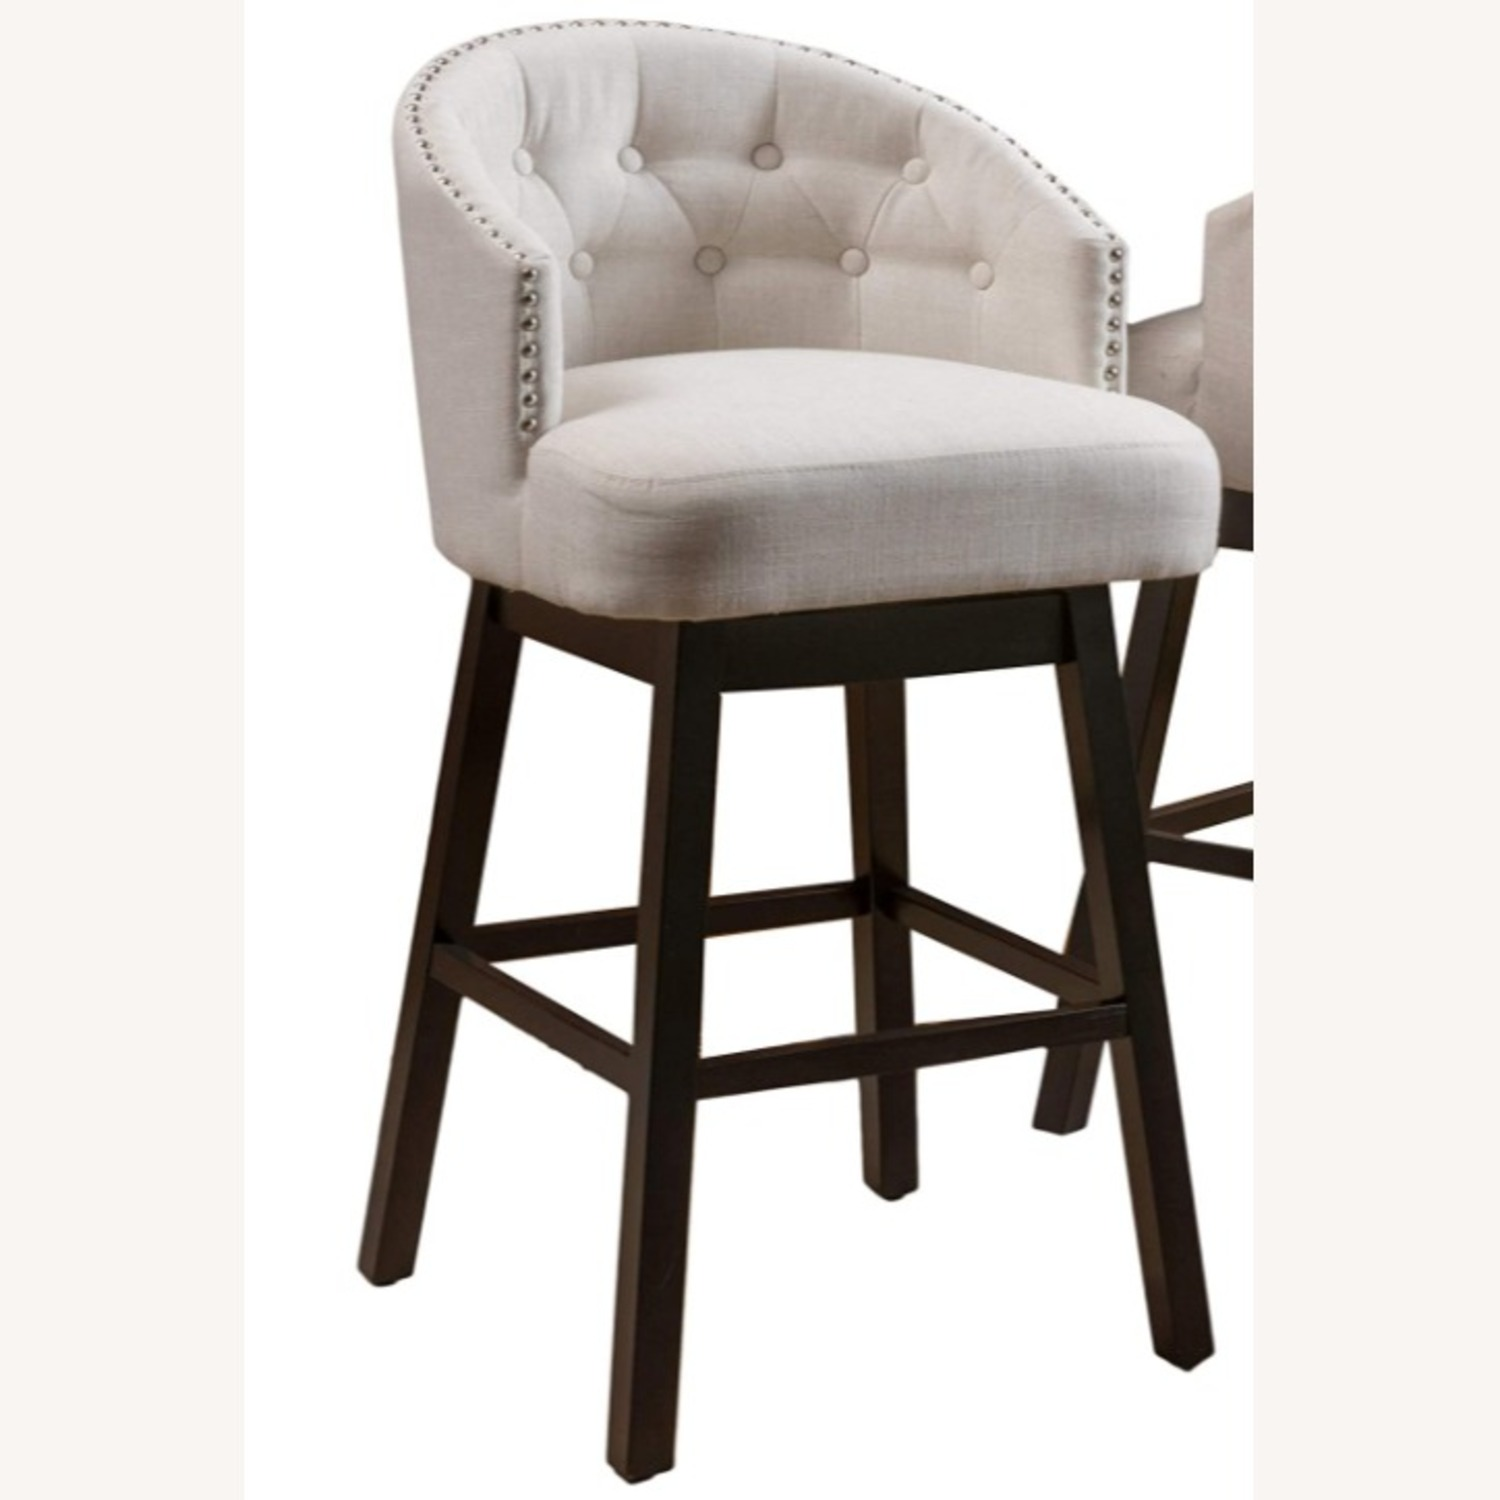 Modern Set of 2 Stools in Beige w Wood Frame  - image-1